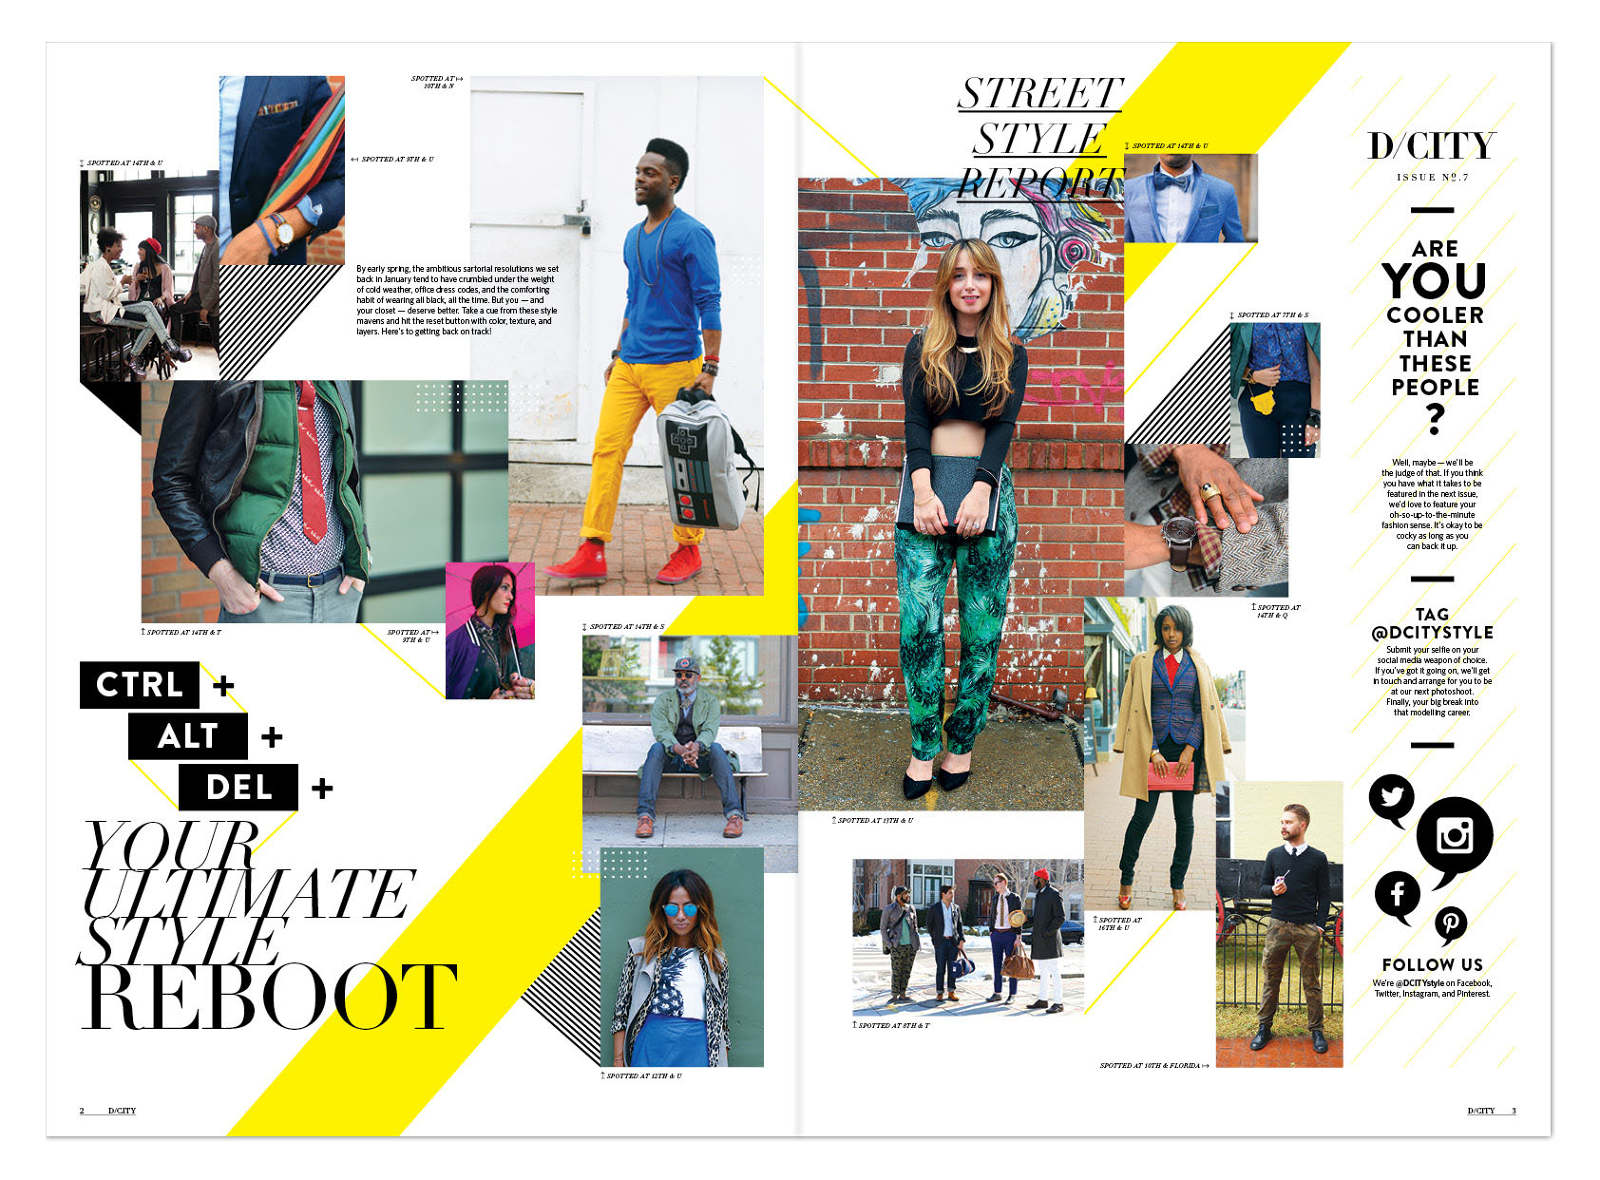 DCity_Issue7.1_1600_c.jpg